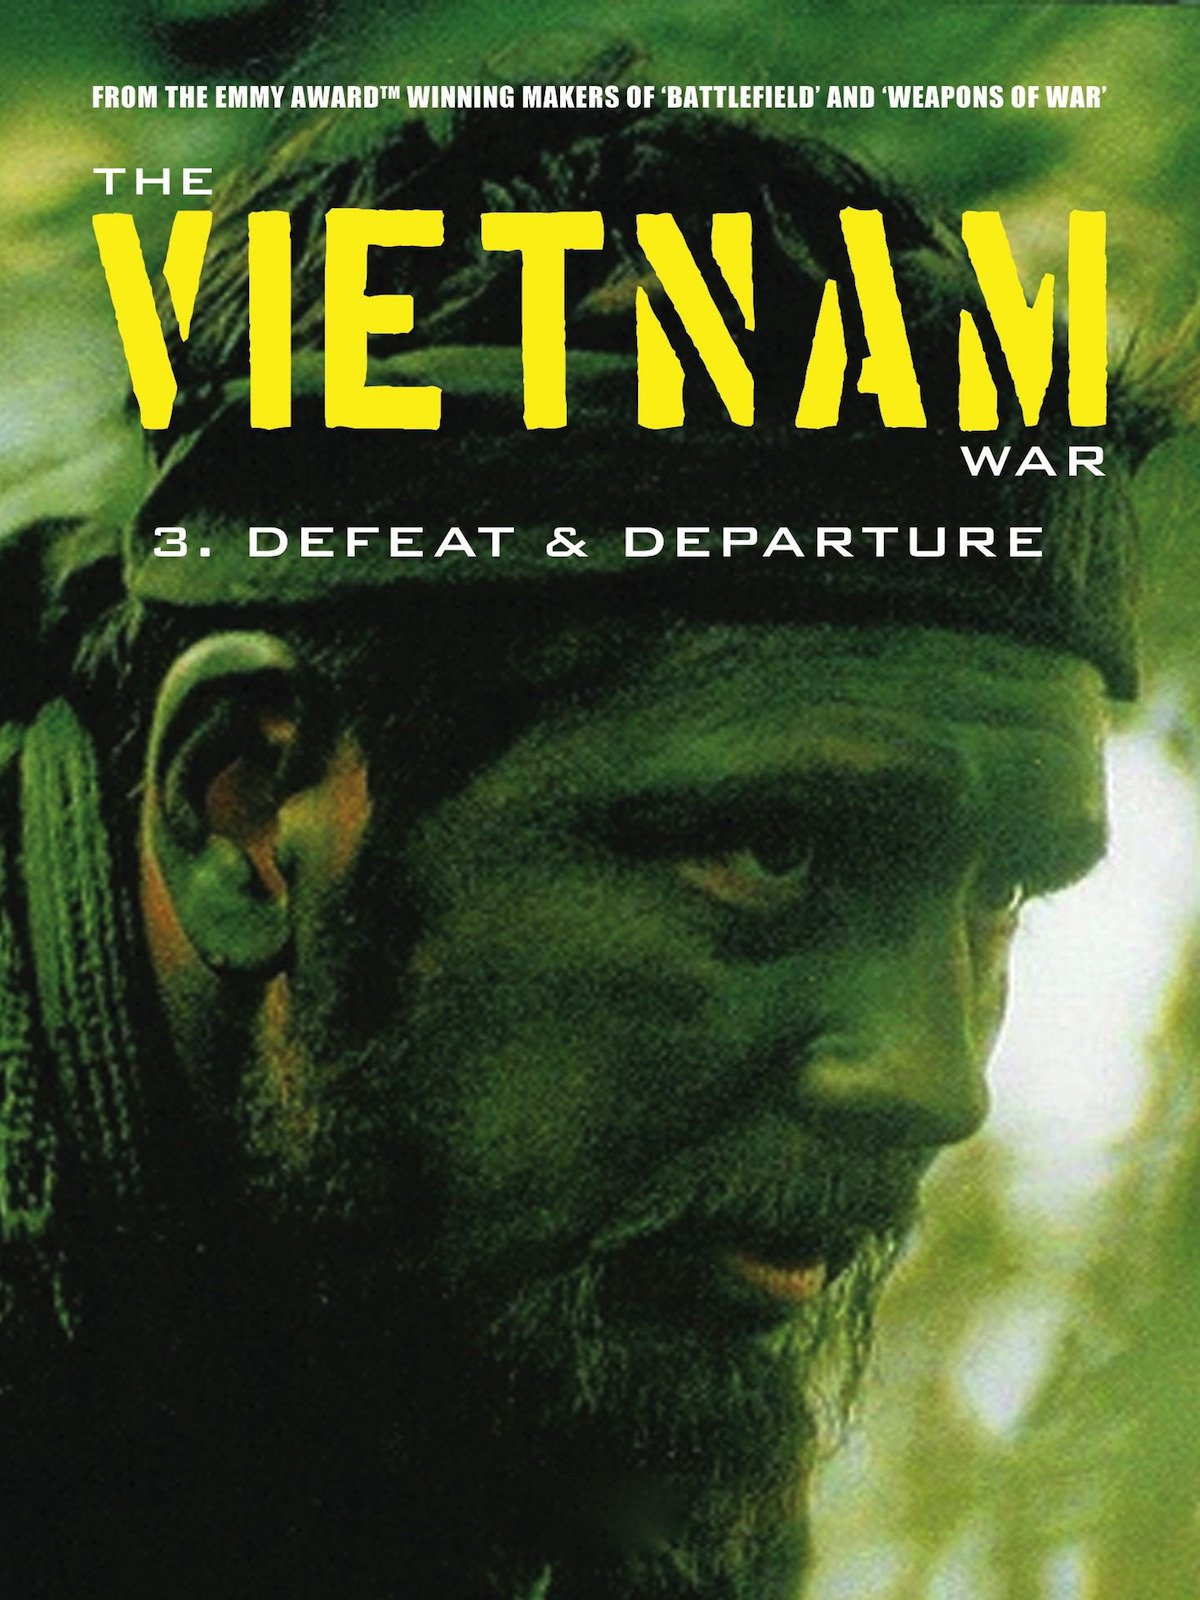 The Vietnam War: Defeat and Departure